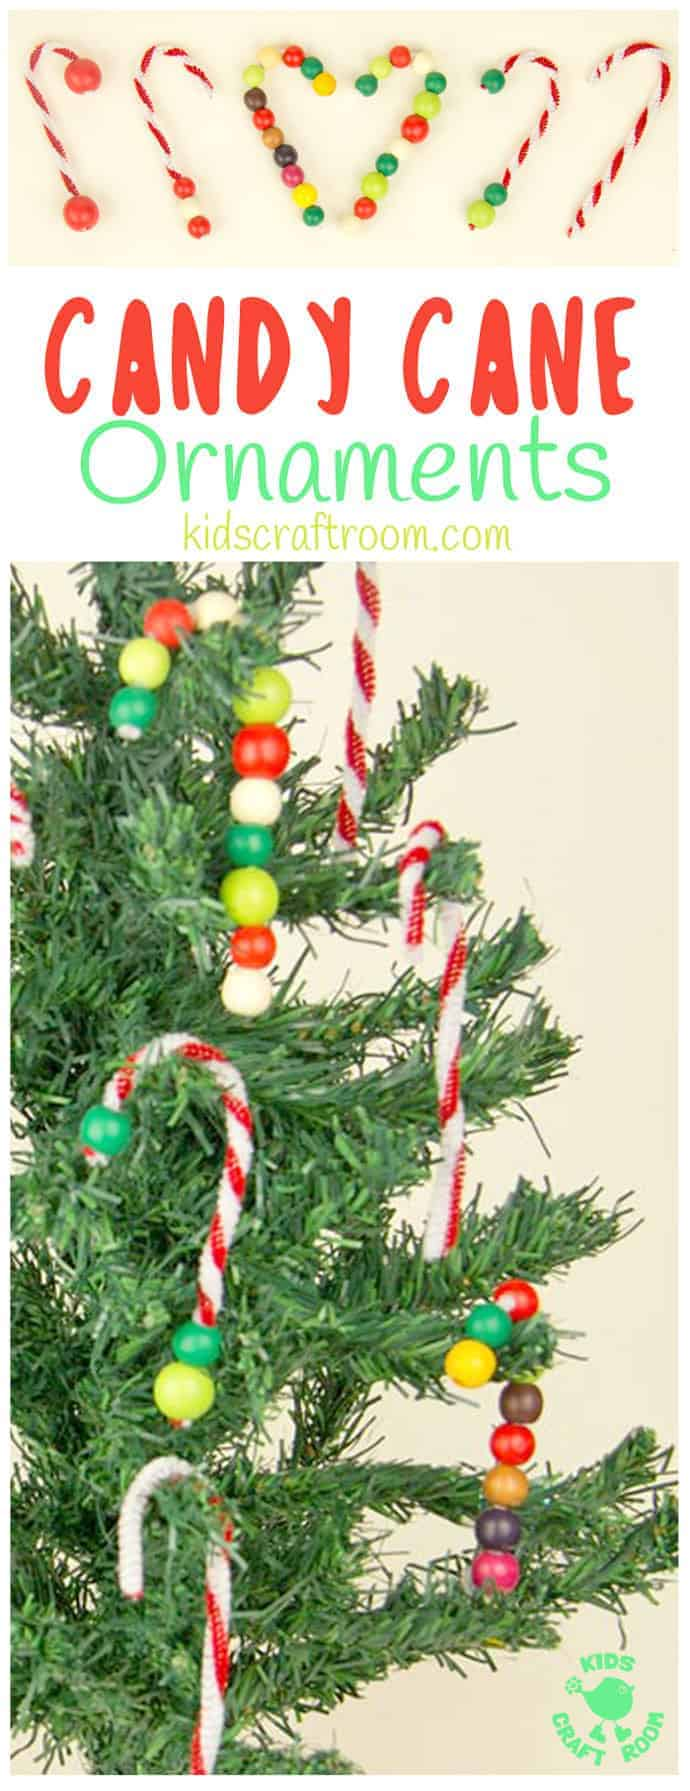 DIY CANDY CANE TREE ORNAMENTS - this pipecleaner and bead Christmas craft for kids is super simple and easy and lots of fun. Make lots of cute candy canes to decorate the Christmas tree.  #christmas #christmascrafts #christmascraftsforkids #ornaments #candycane #kidscrafts #kidscrafts101 #kidscraftroom #christmasforkids #kidsactivities #finemotor